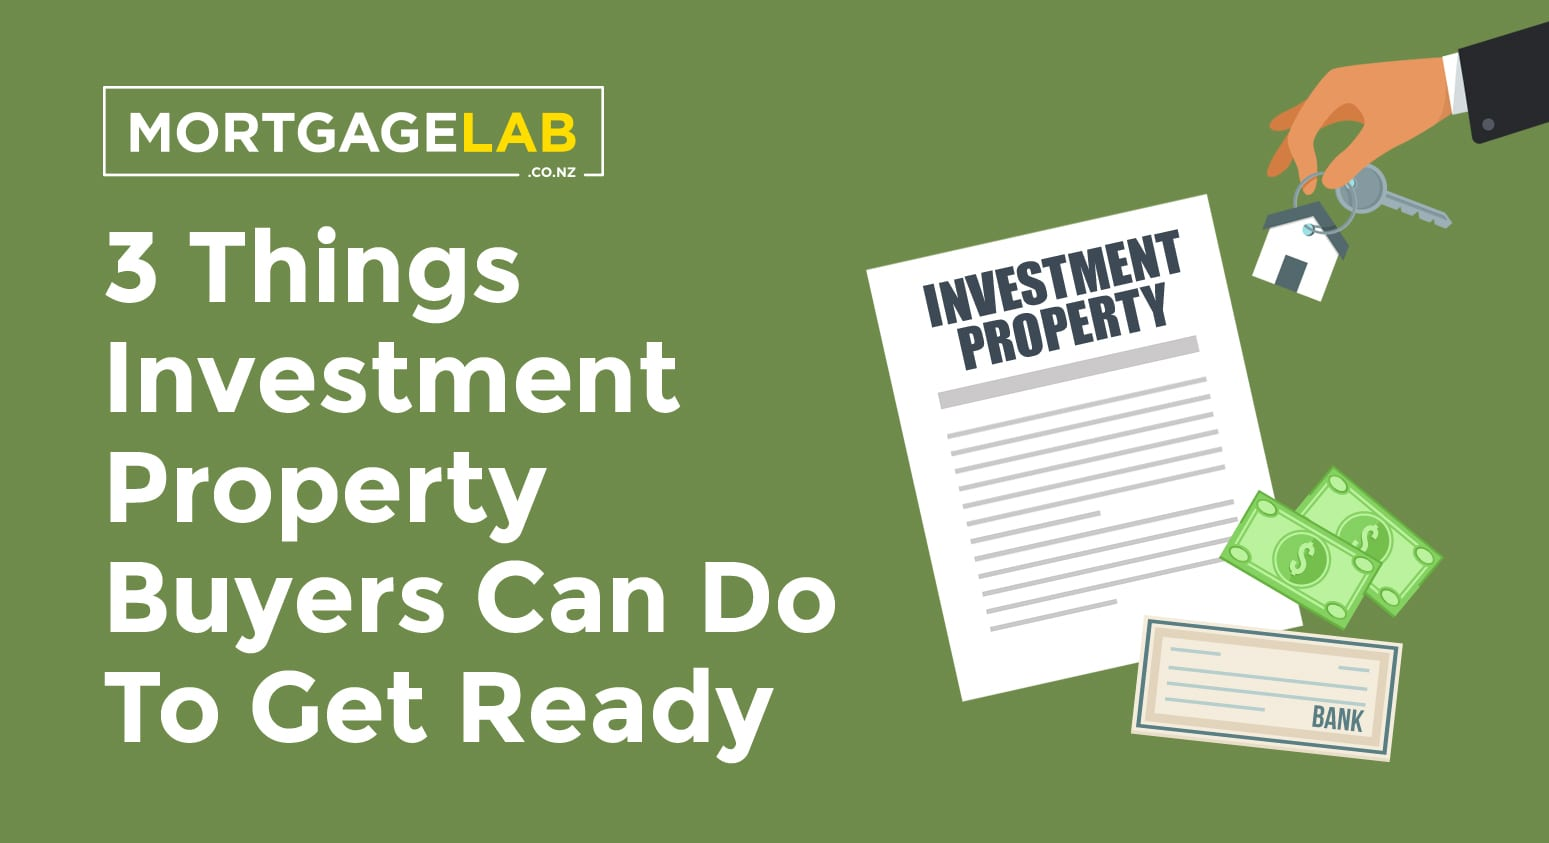 3 Things Investment Property Buyers Can Do To Get Ready